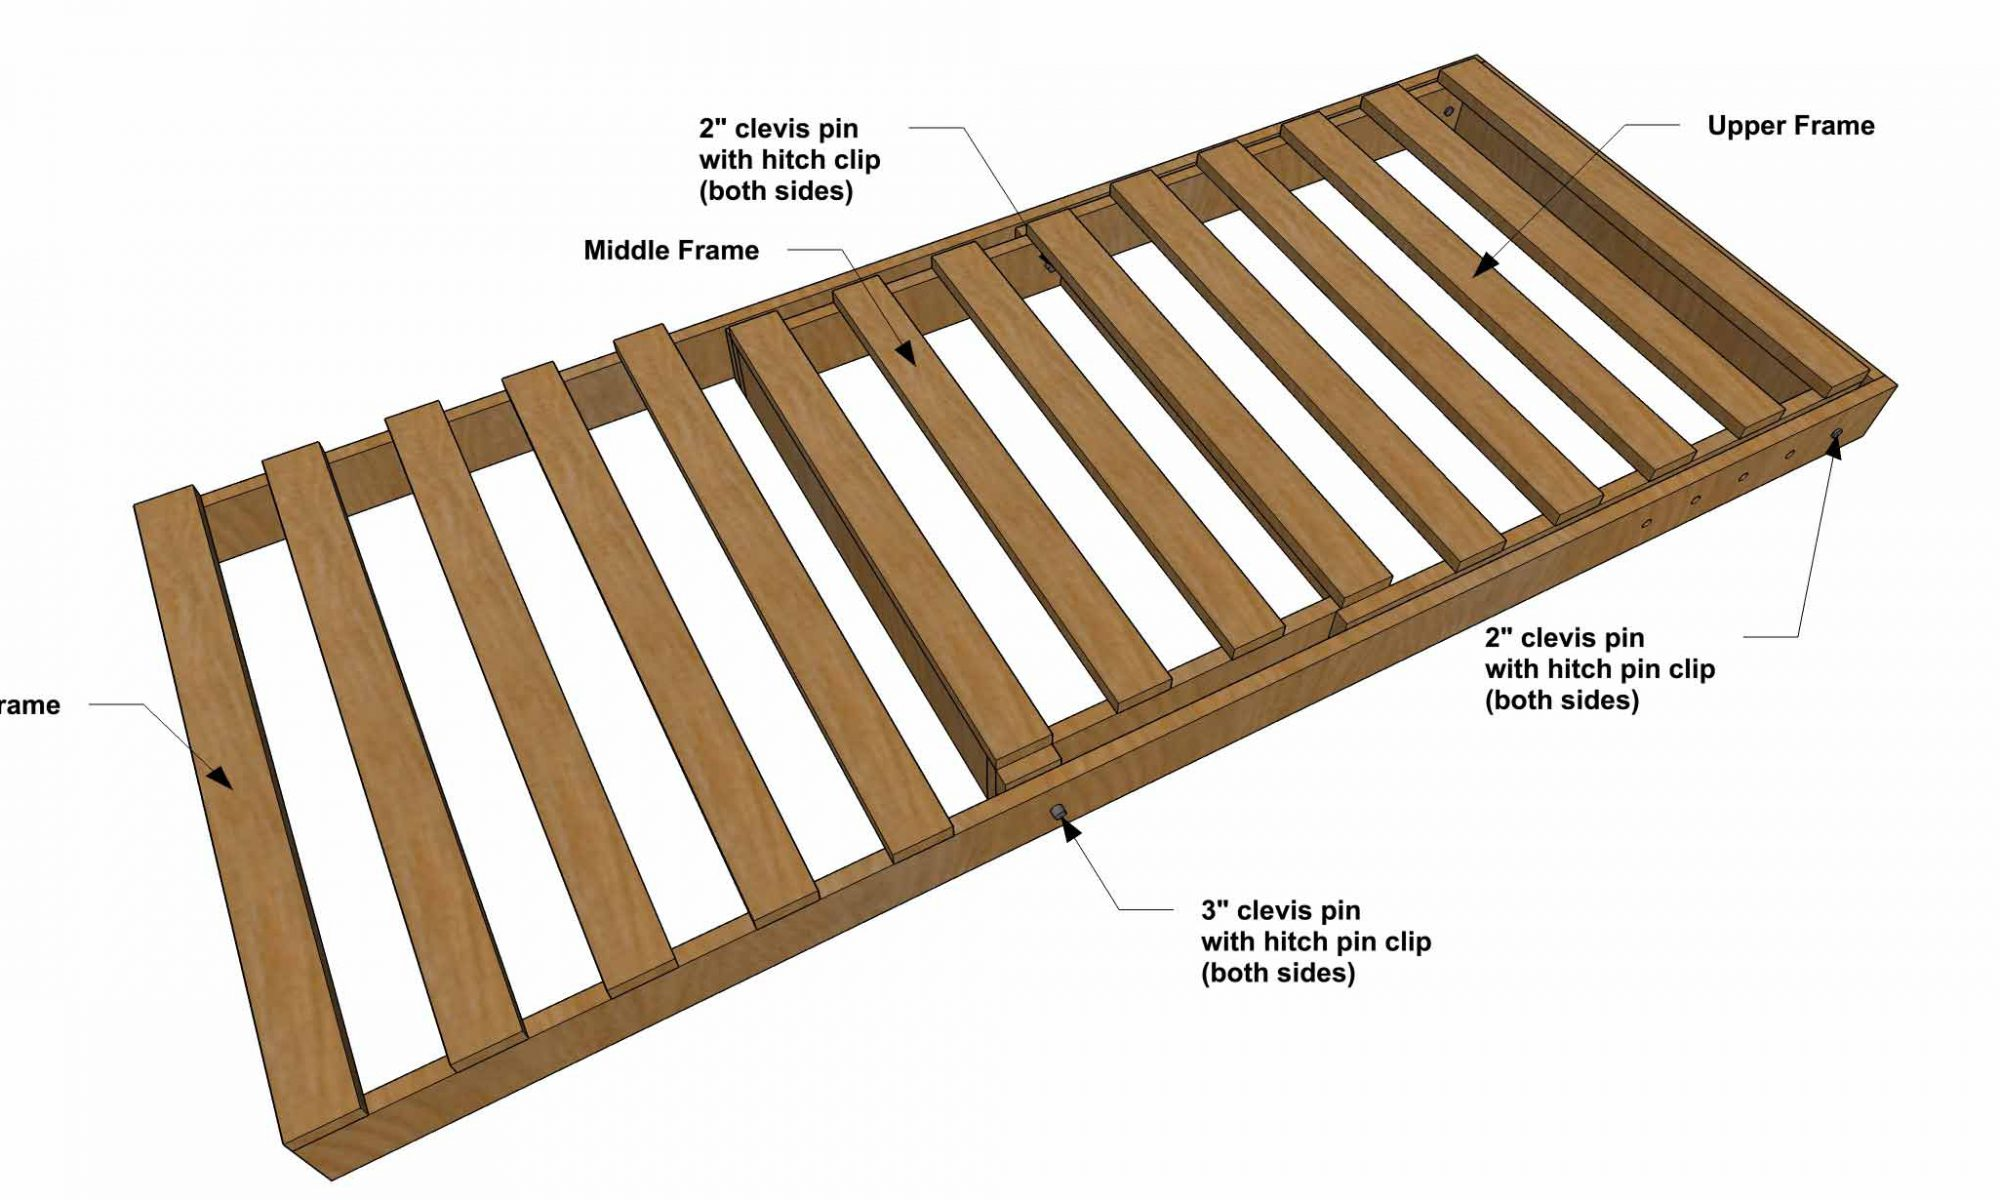 Awesome Lay out the Main Frame on a flat surface Place the Middle Frame and Upper Frame within the Main Frame as shown